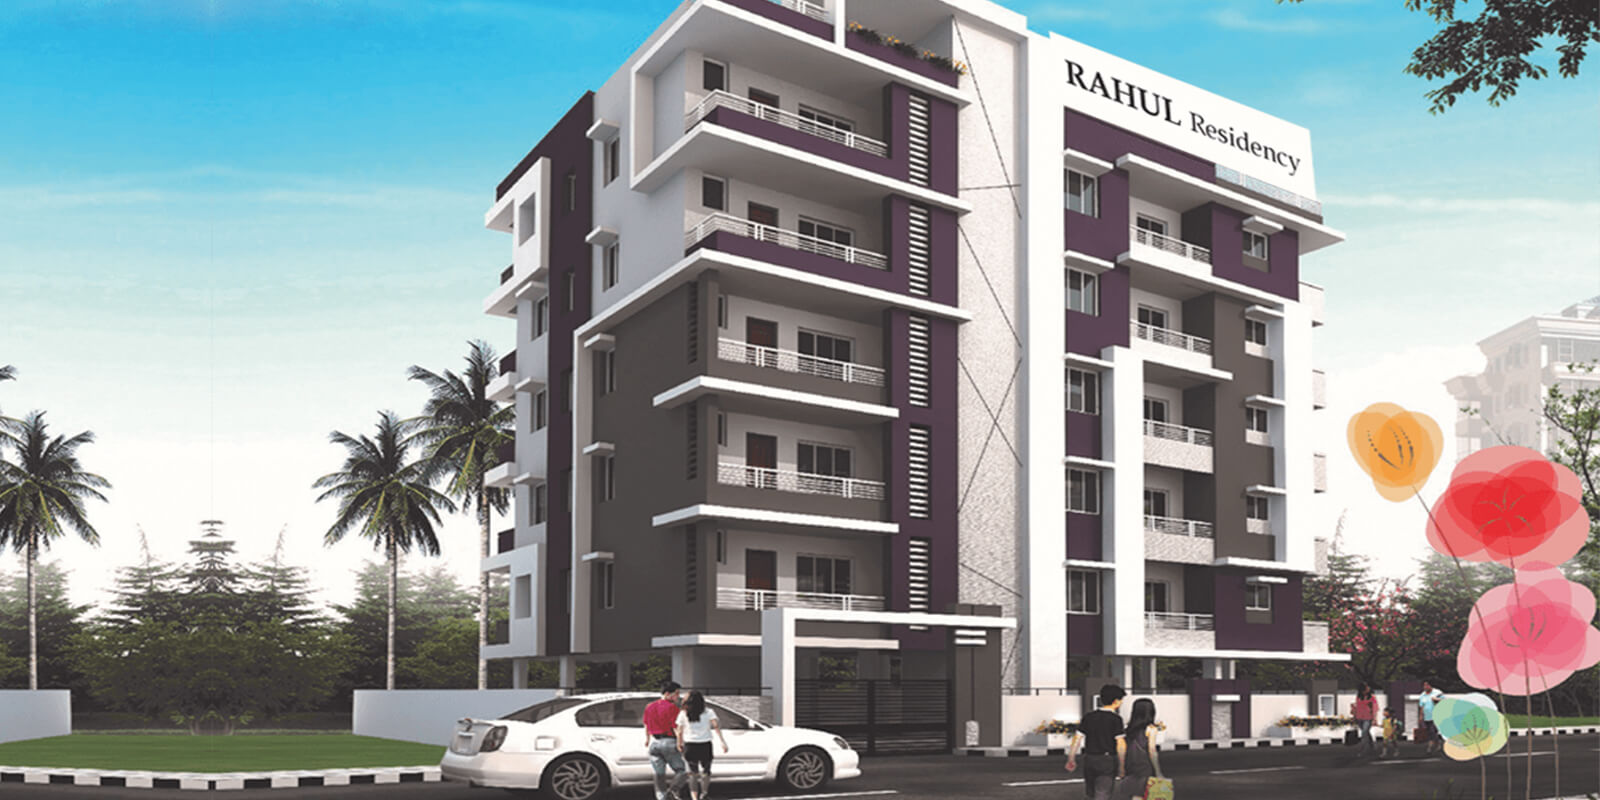 jaya rahul residency project large image1